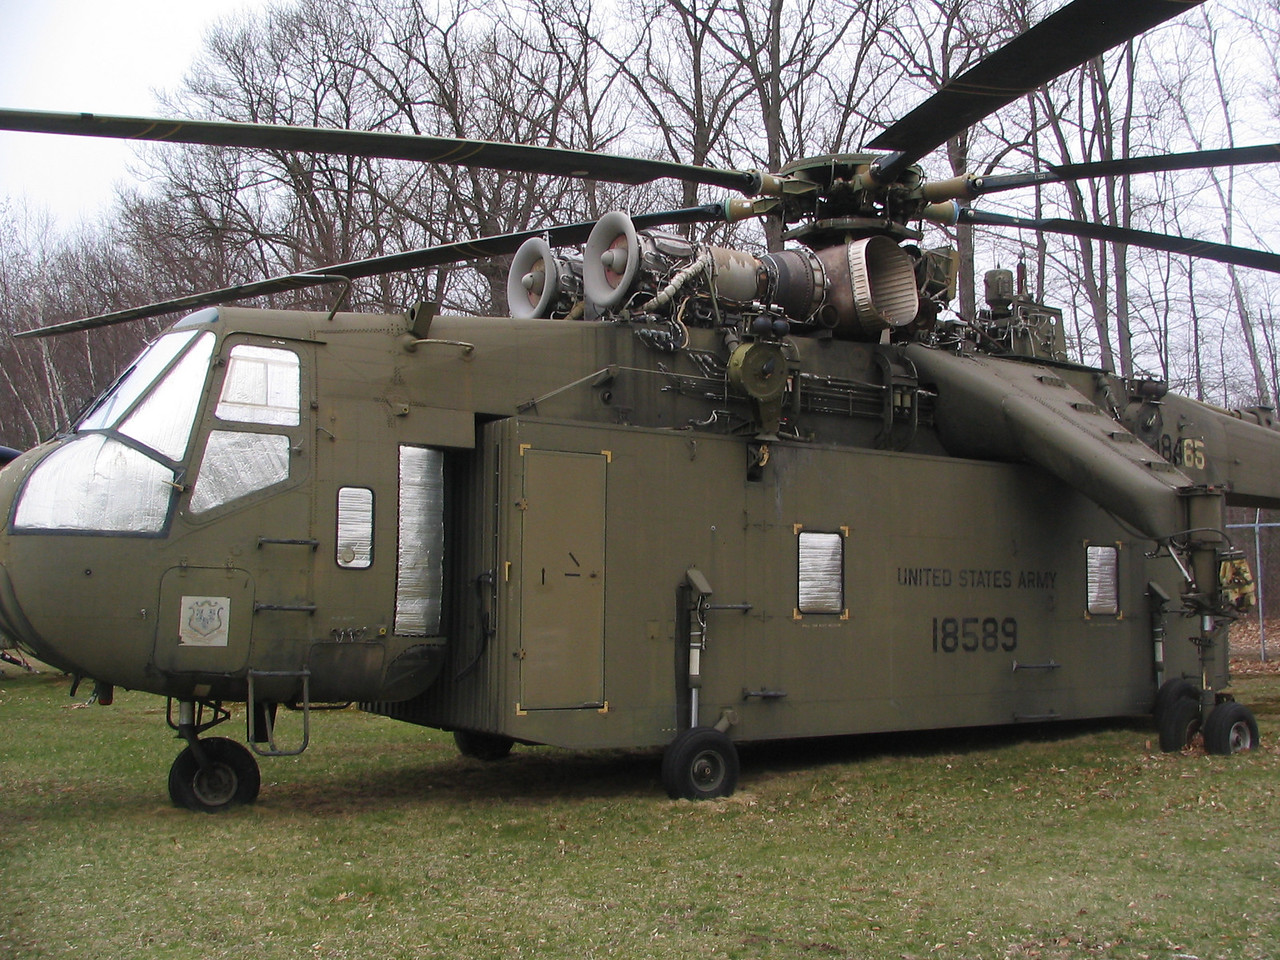 Sikorsky CH-54B Skycrane. This awkward but amazing machine can carry 42,000 pounds for as much as 230 miles up to 126 mph.